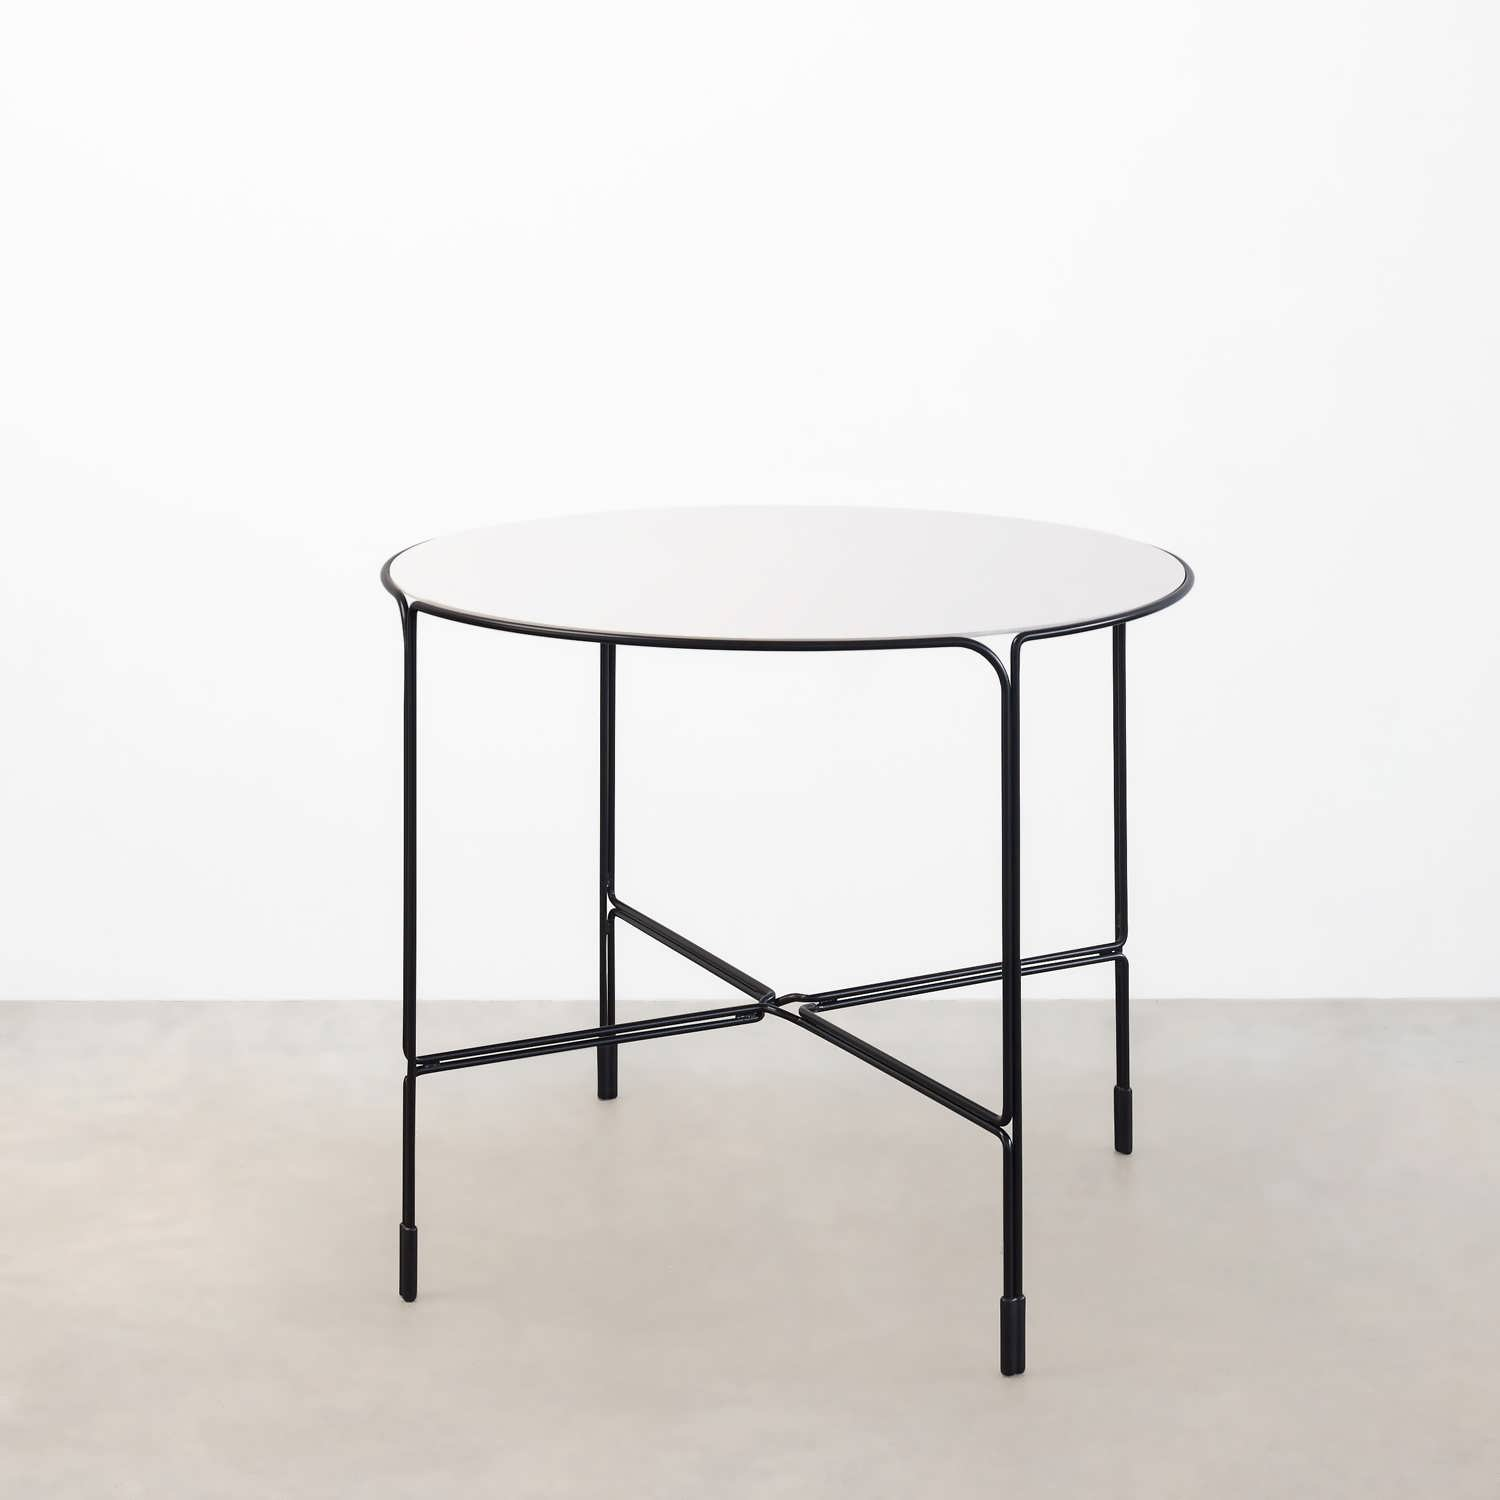 coffee table machines outdoor round patio modern ideas with umbrella mosaic side hole furniture website design occasional uttermost samuelle wooden end thomasville tables laflorn